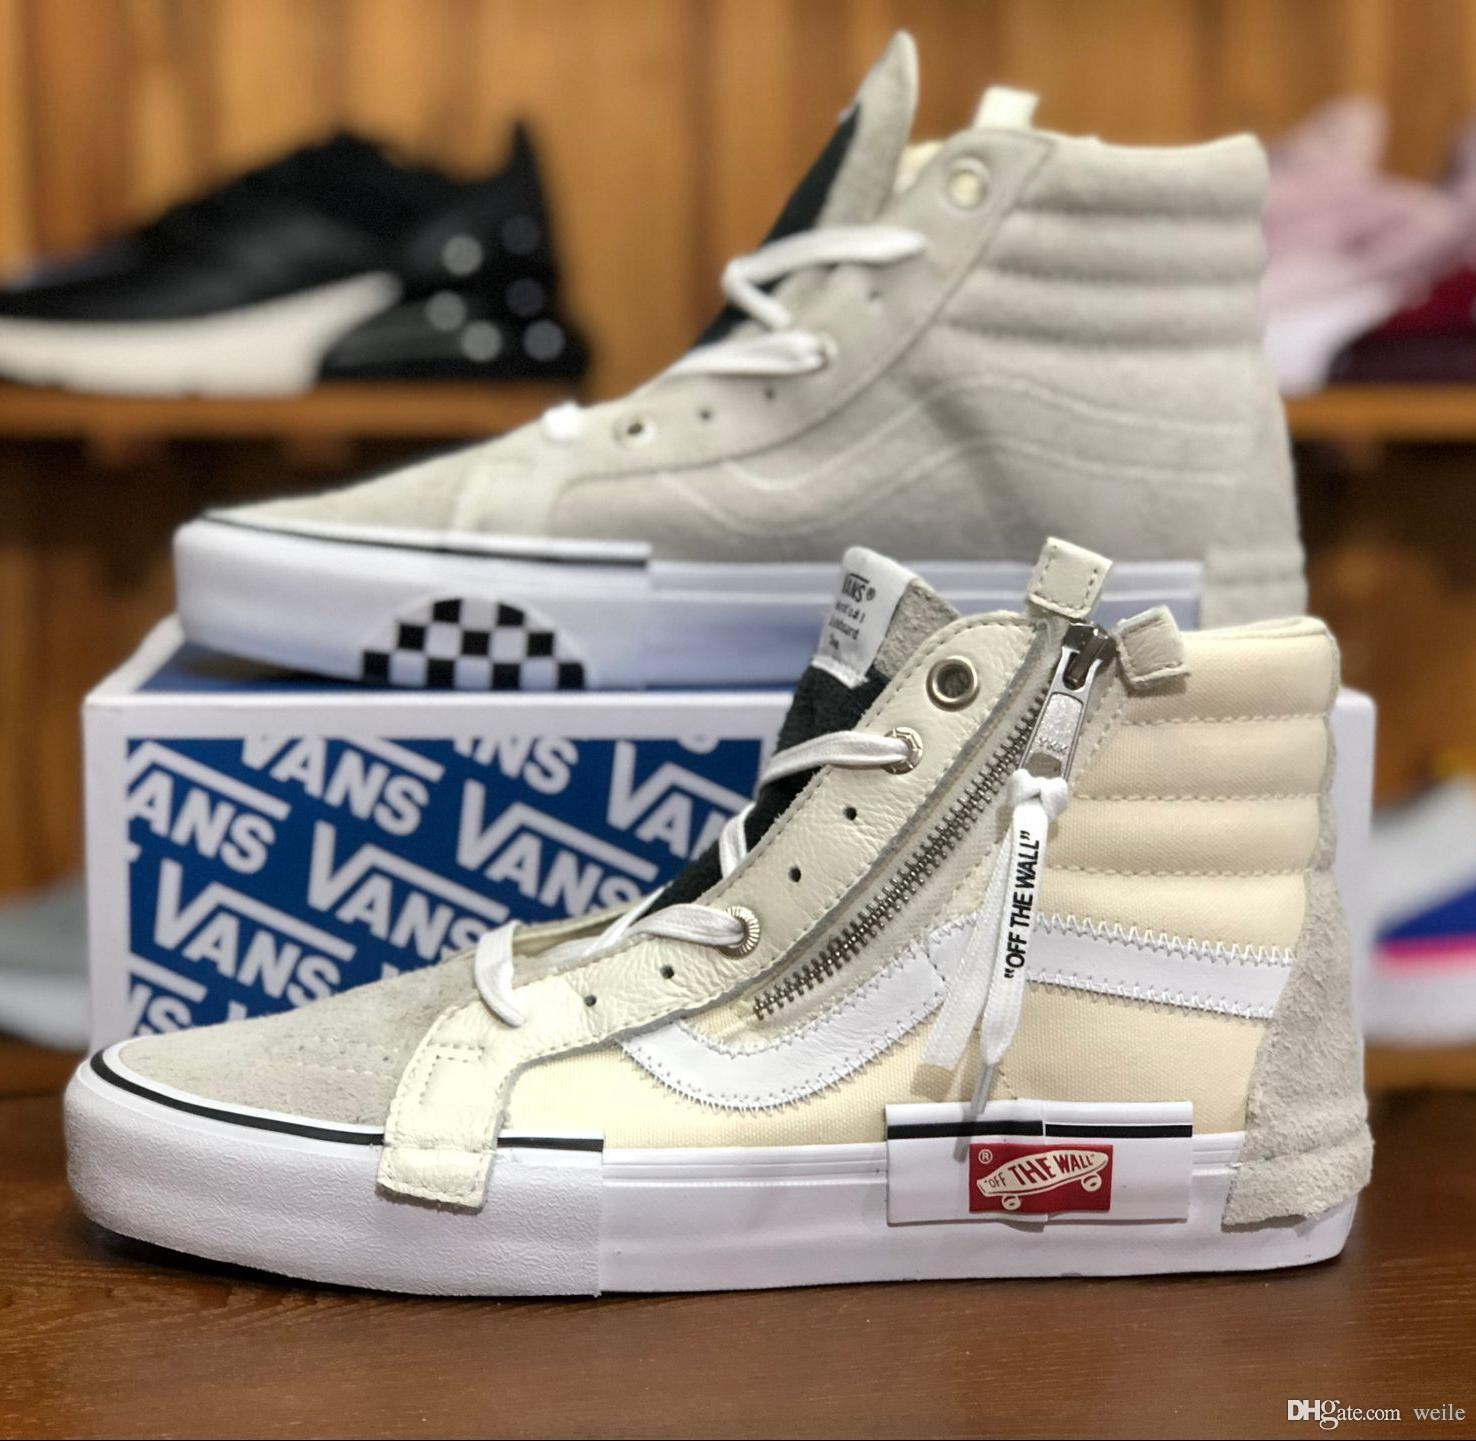 VAULT OG SK8 HI SLIP ON CAP LX Women Men Old Skool Casual Shoes Designer  Canvas Zapatillas De Deporte High Top Sport Sneakers UK 2019 From Weile a1c9b0704